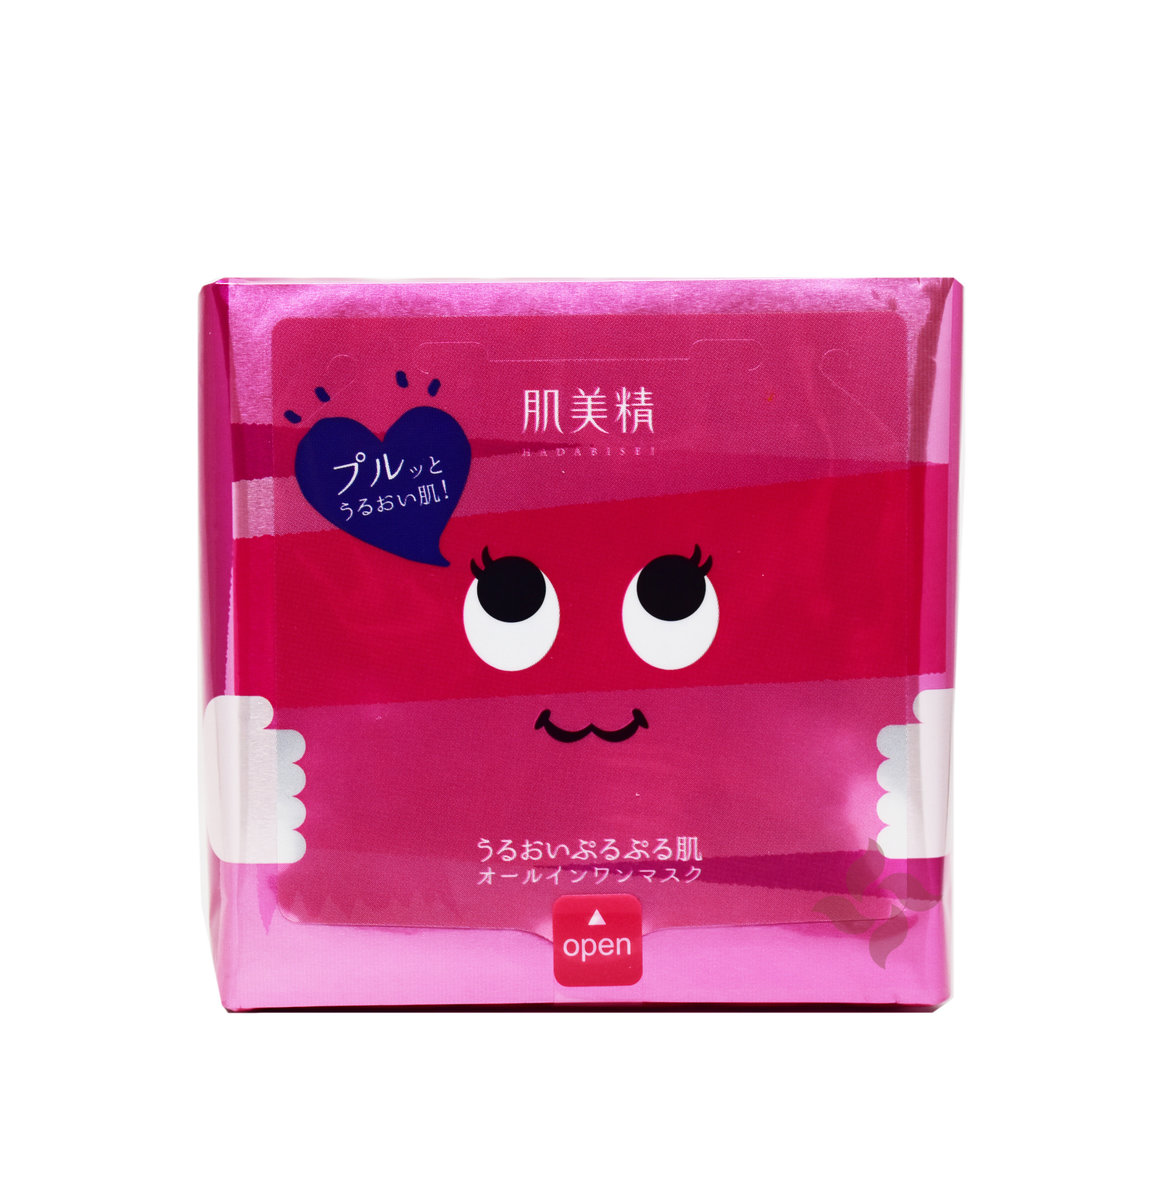 Hadabisei All-in-one Daily Moisturizing Facial Mask (Moist Pink) 31pcs (4901417631671)